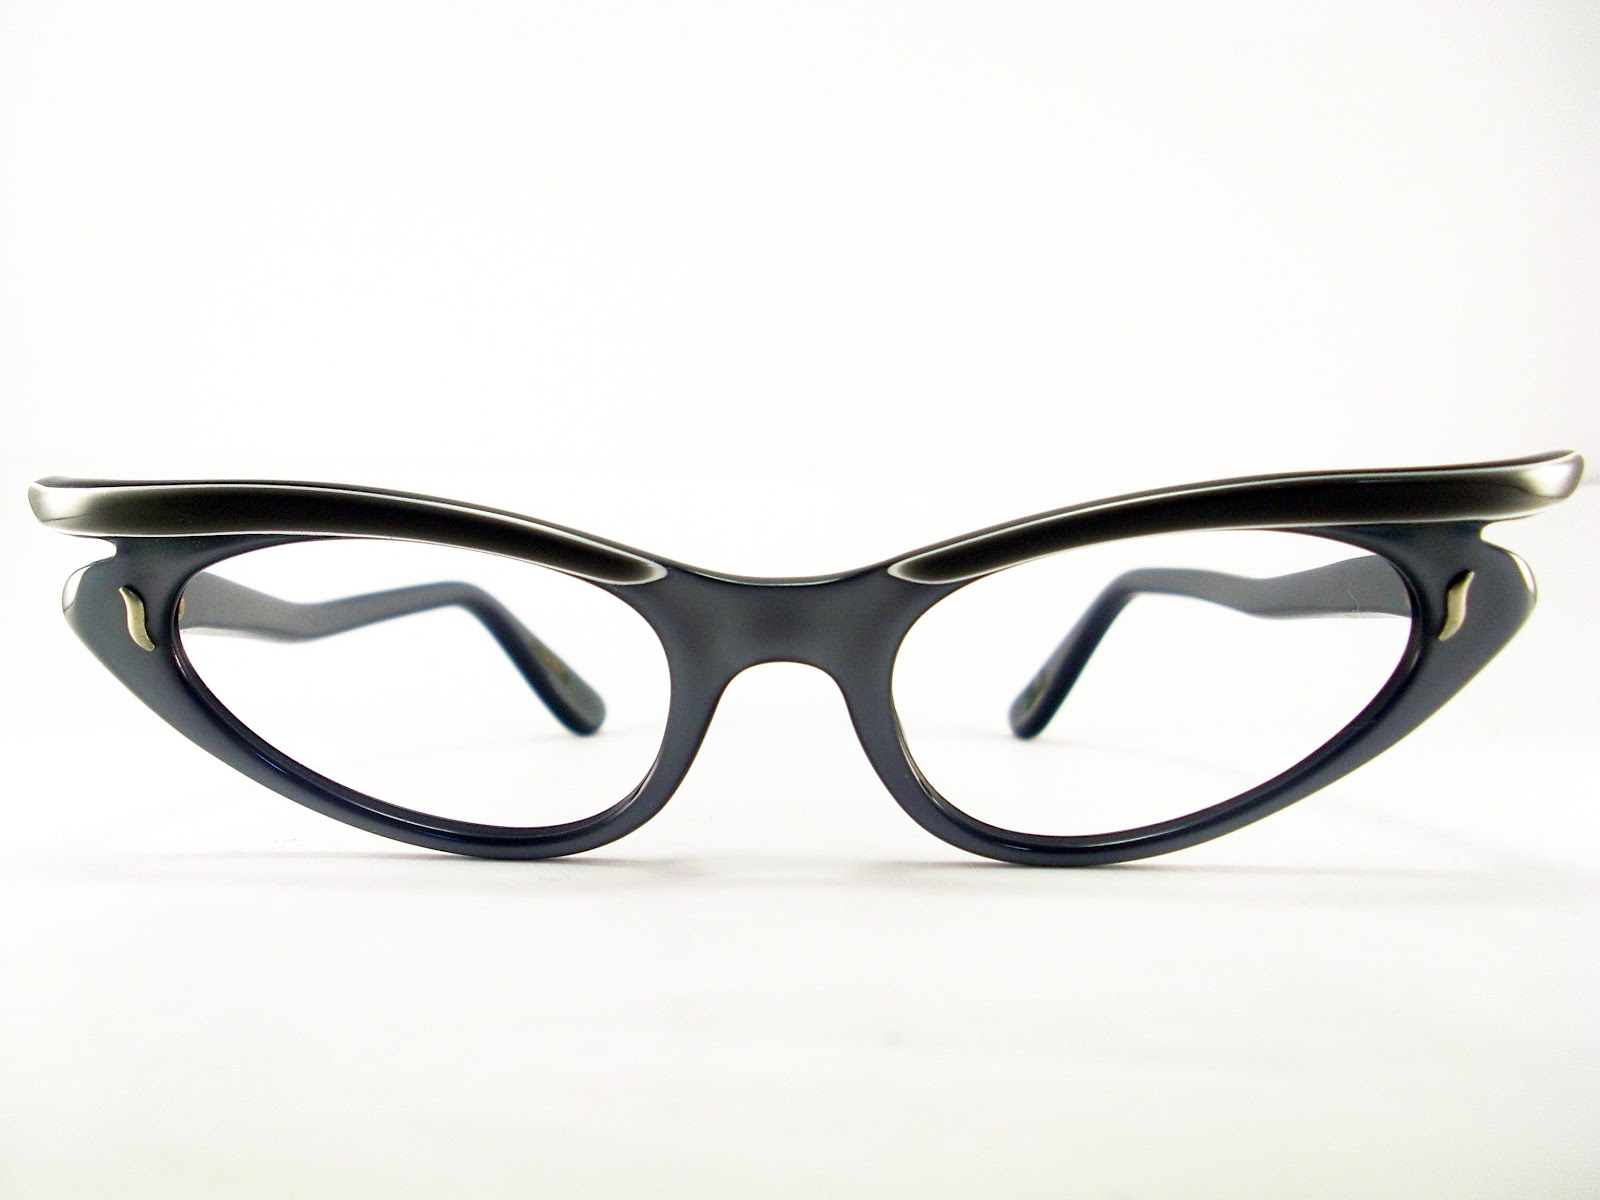 Vintage Eyeglasses Frames Eyewear Sunglasses 50S: CAT EYE ...